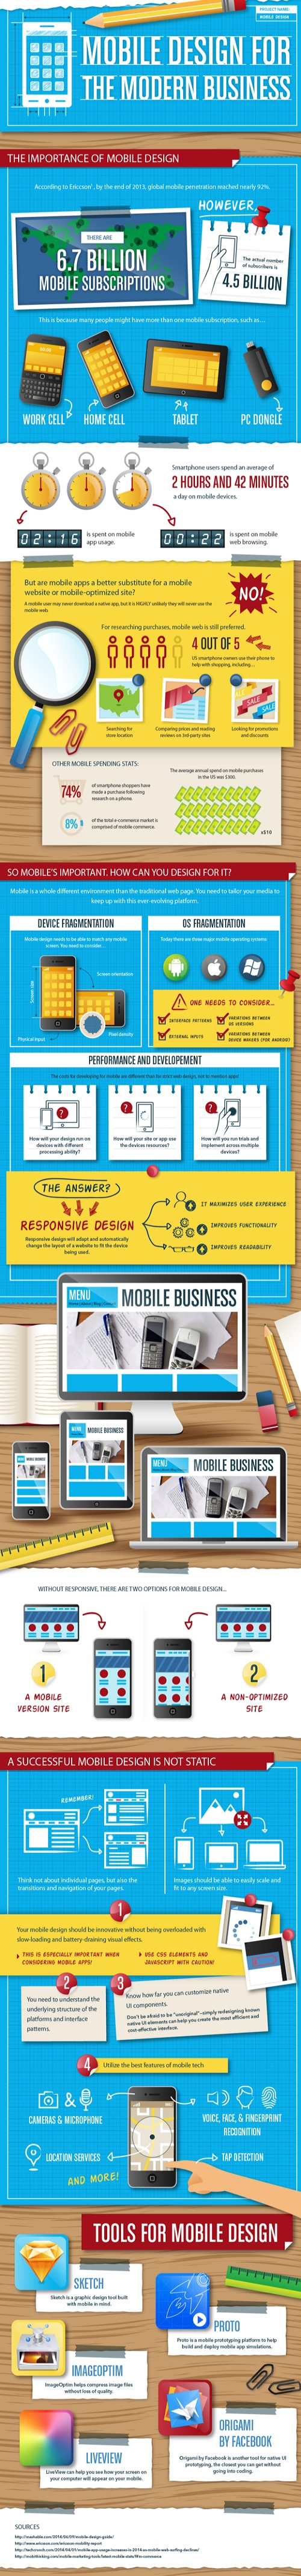 Mobile Design for the Modern Business